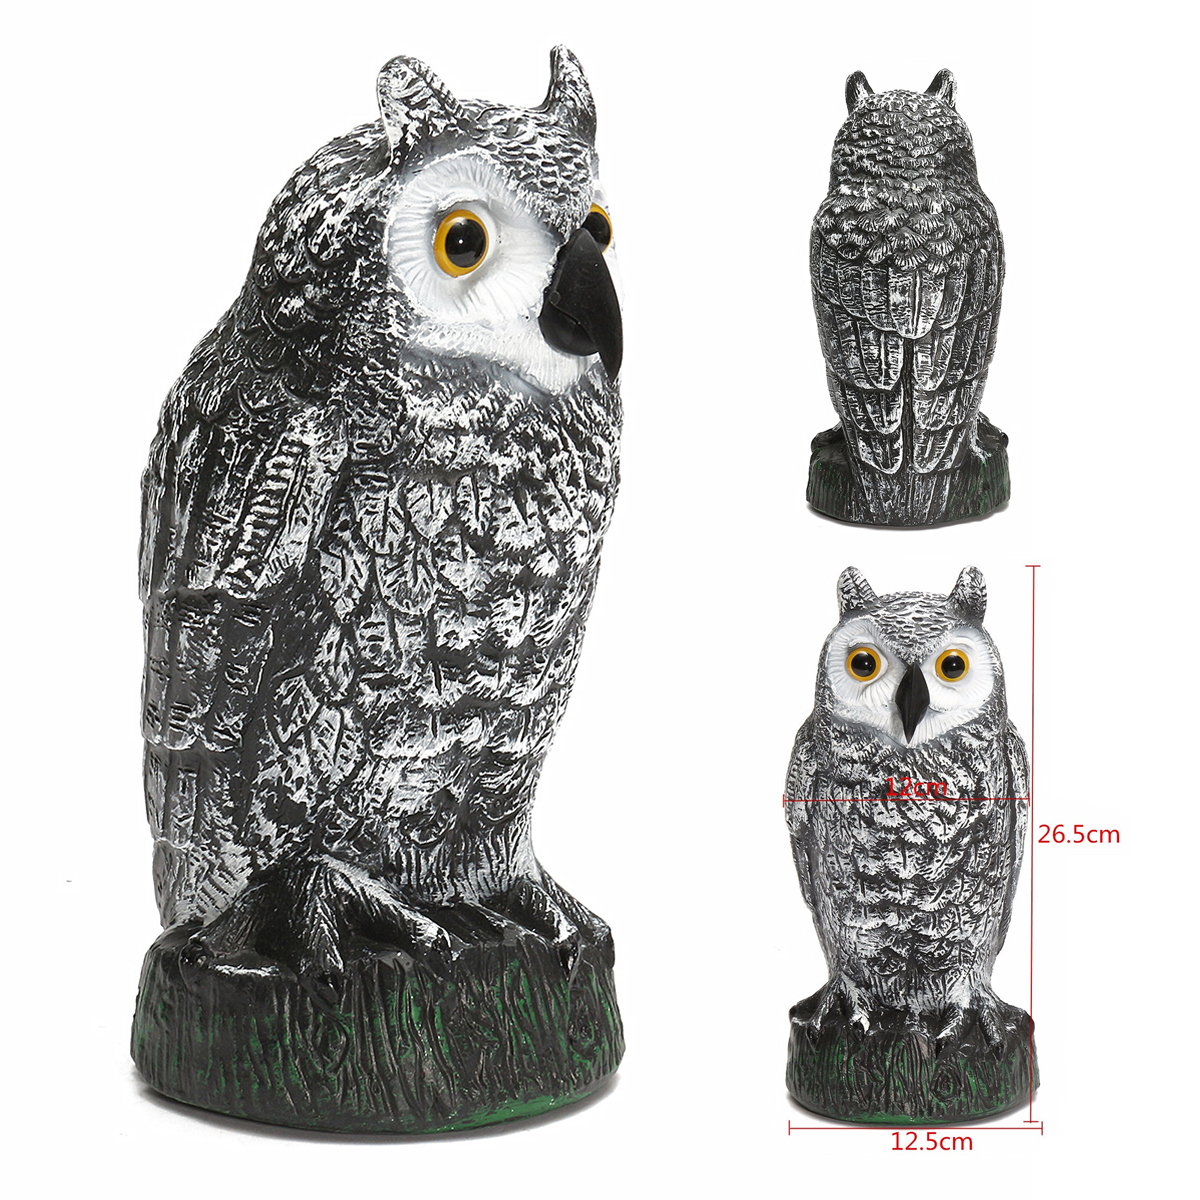 Plastic standing fake owl hunting decoy deterrent scarer for Garden accessories sale